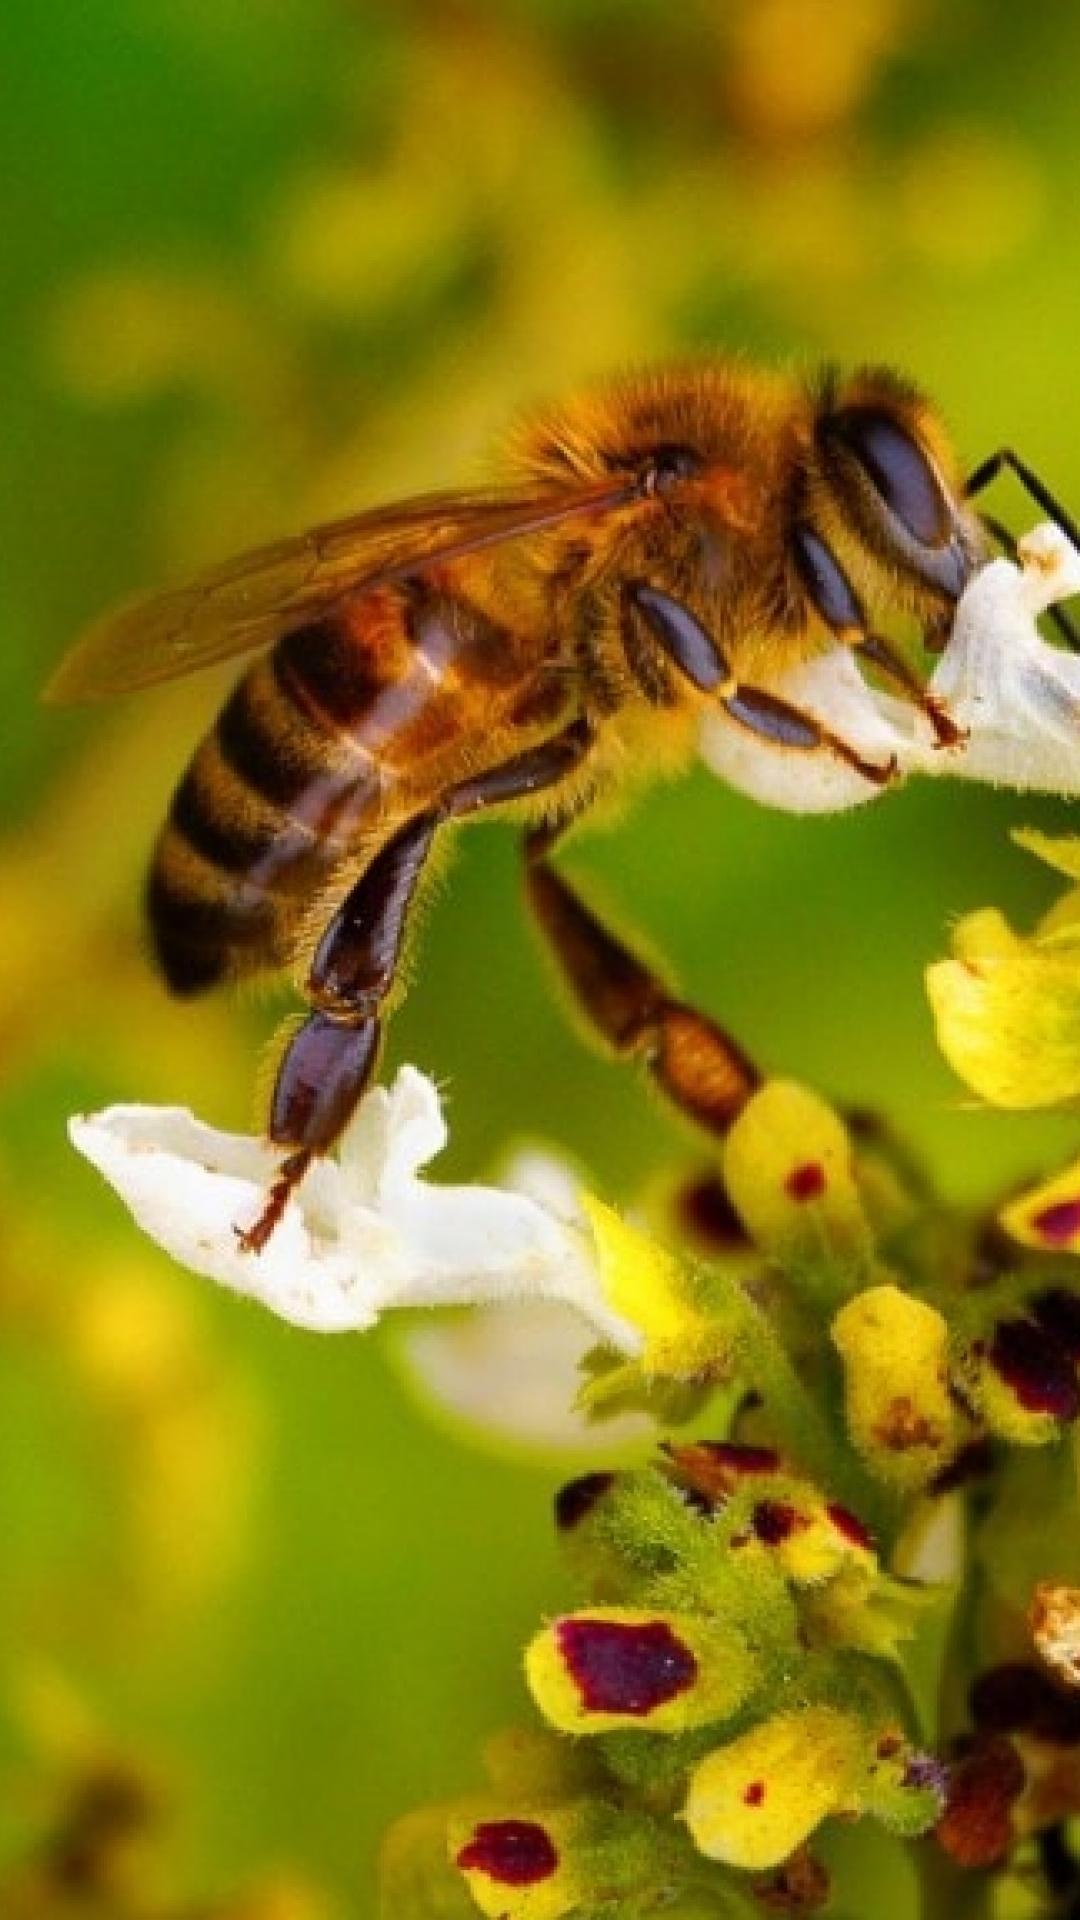 Bee Hd Wallpaper For Android Apk Download